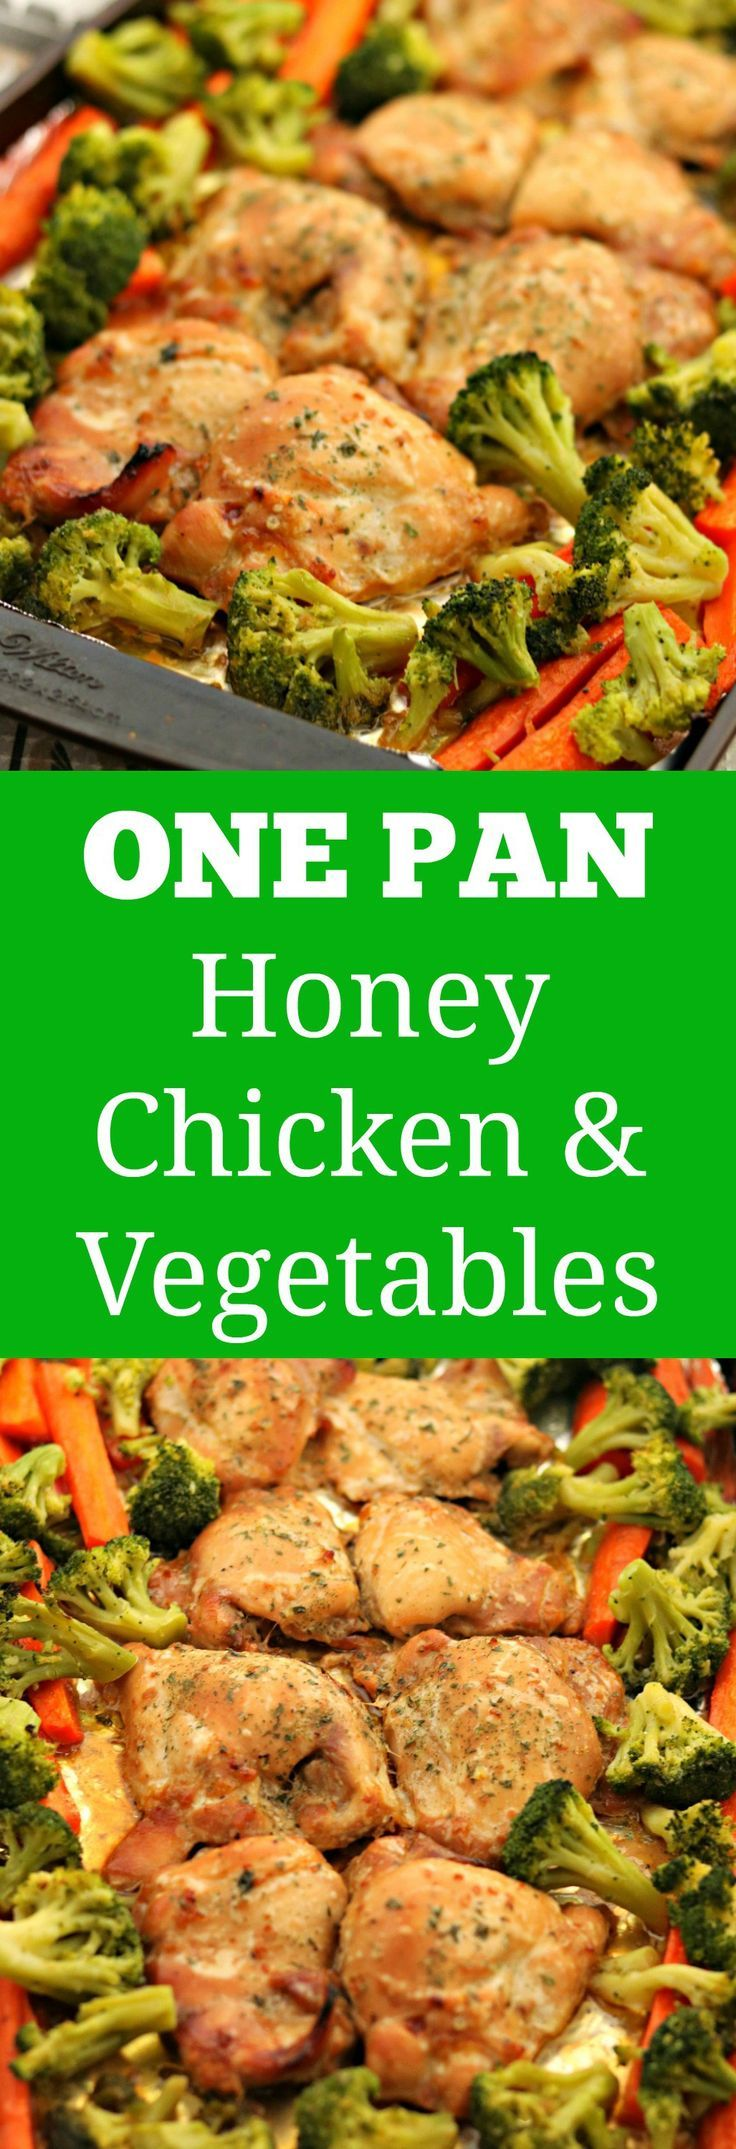 one pan honey chicken thighs and vegetables via www.chocolateslopes.com